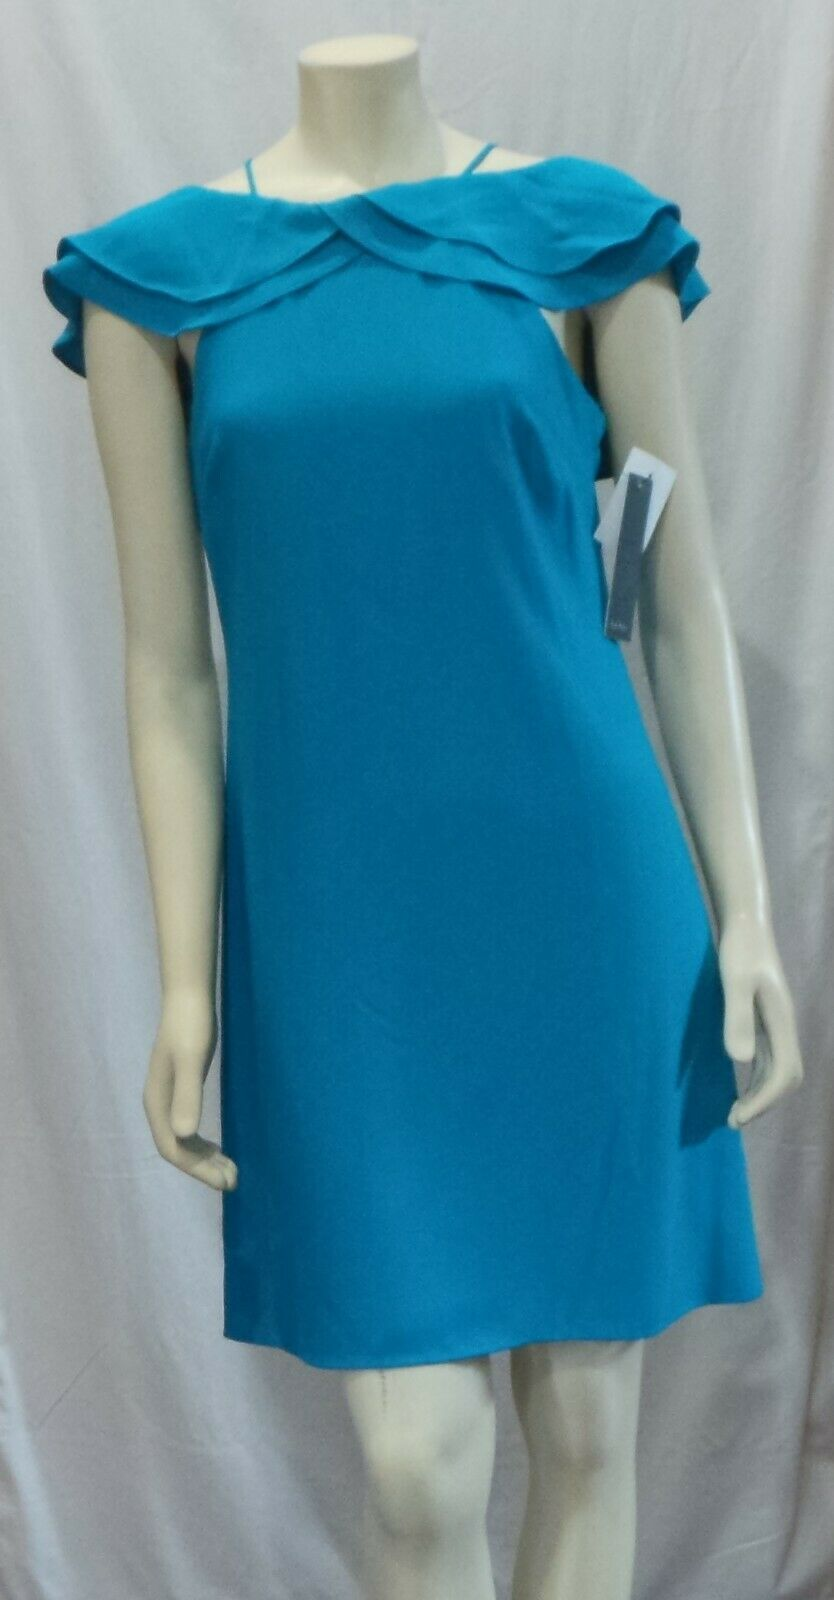 NICOLE MILLER NEW YORK TIErot RUFFLE COLD SHOULDER TURQUOISE DRESS Größe 6